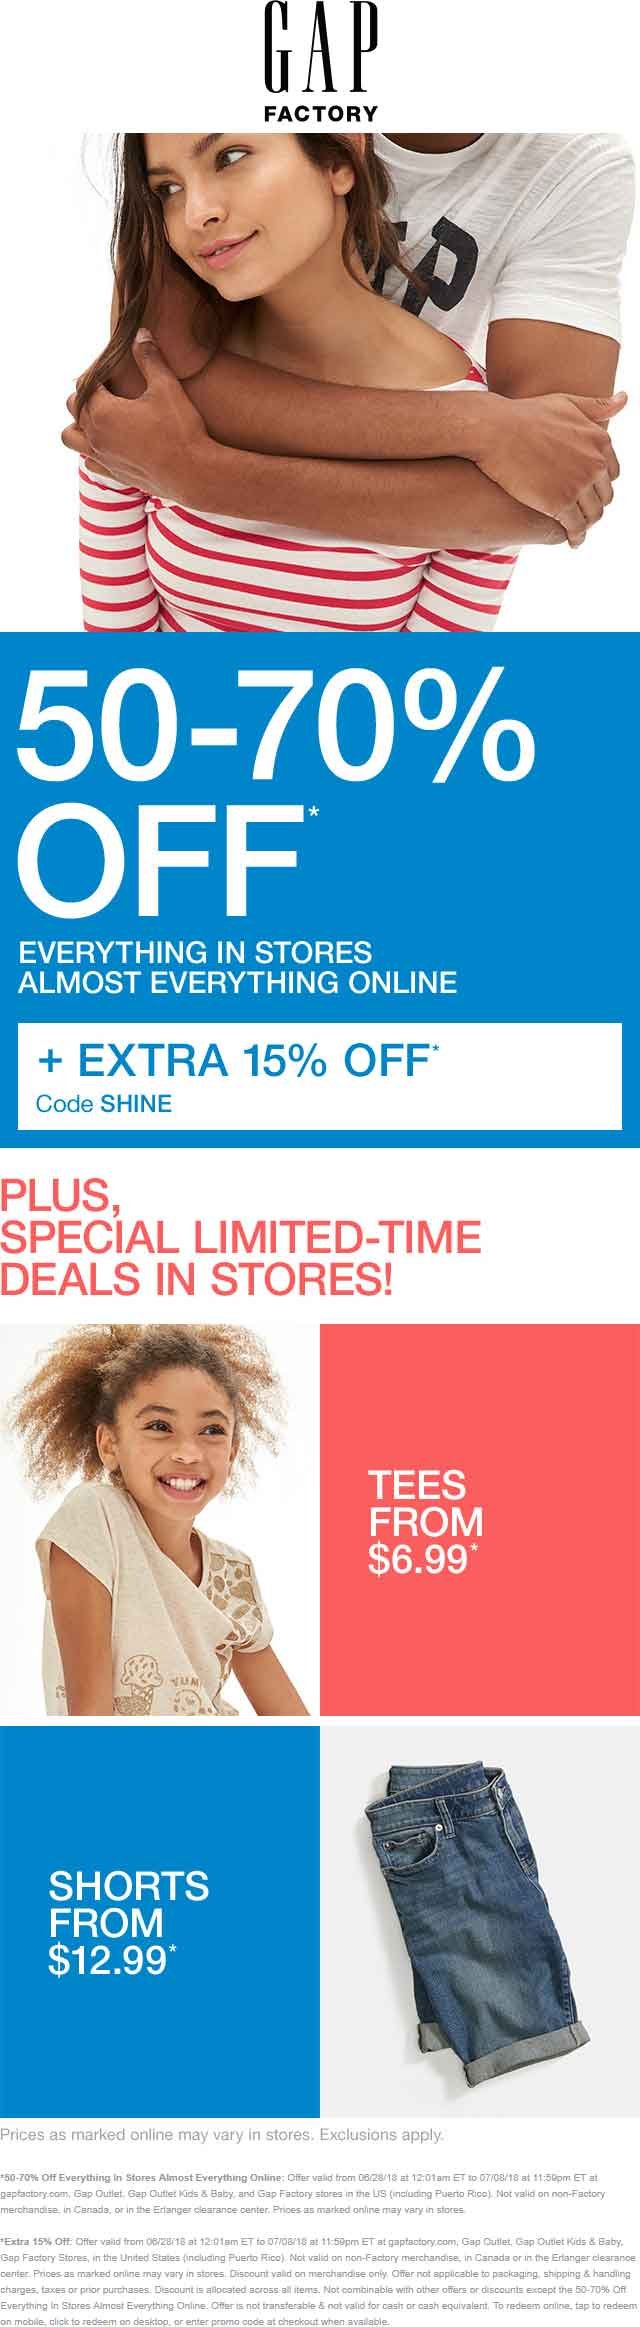 GapFactory.com Promo Coupon 50-85% off at Gap Factory, or online via promo code SHINE